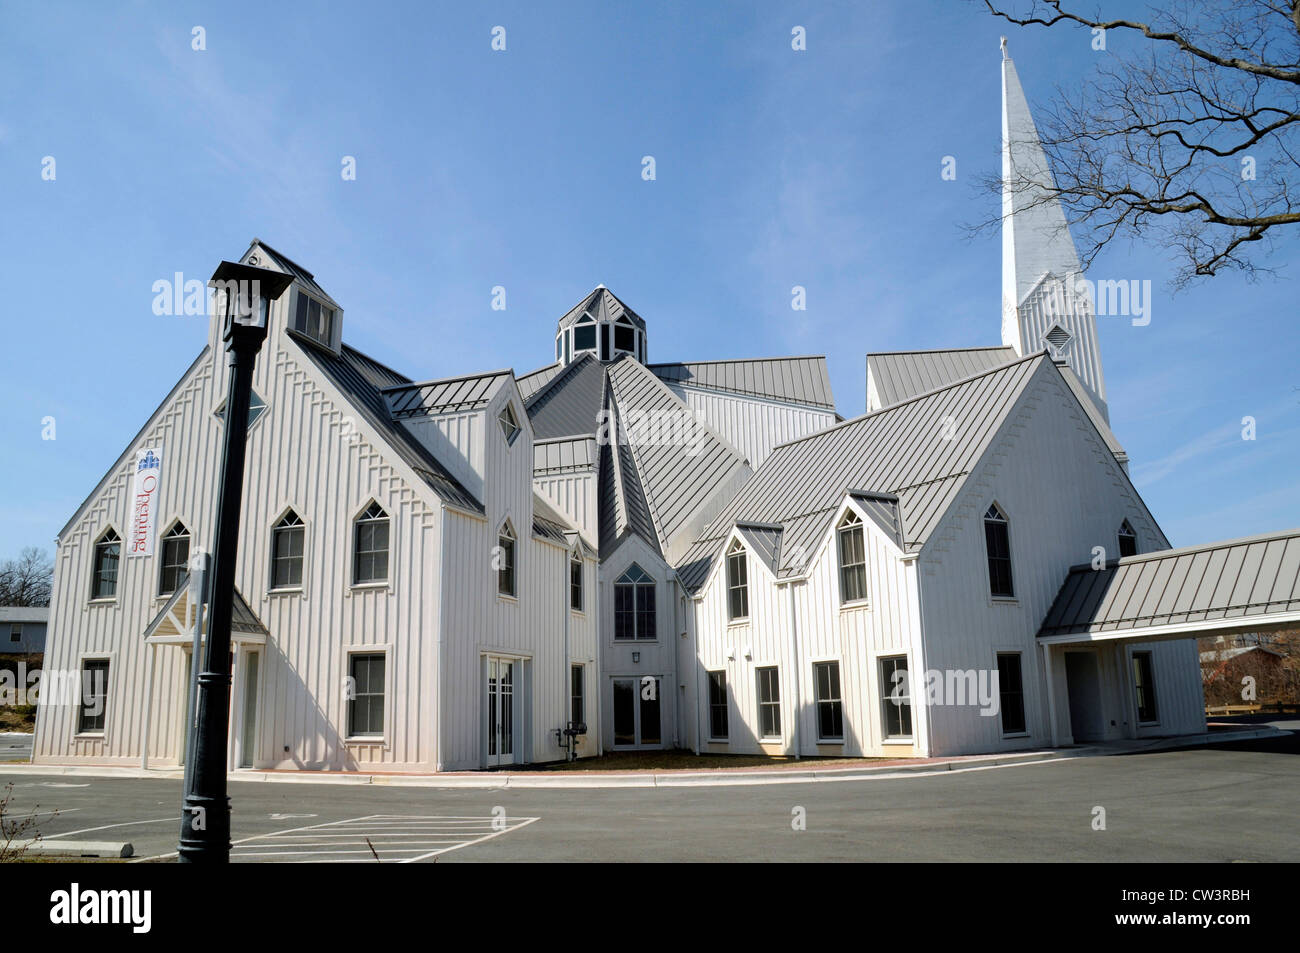 The Wallace Presbyterian Church in College Park, Maryland - Stock Image